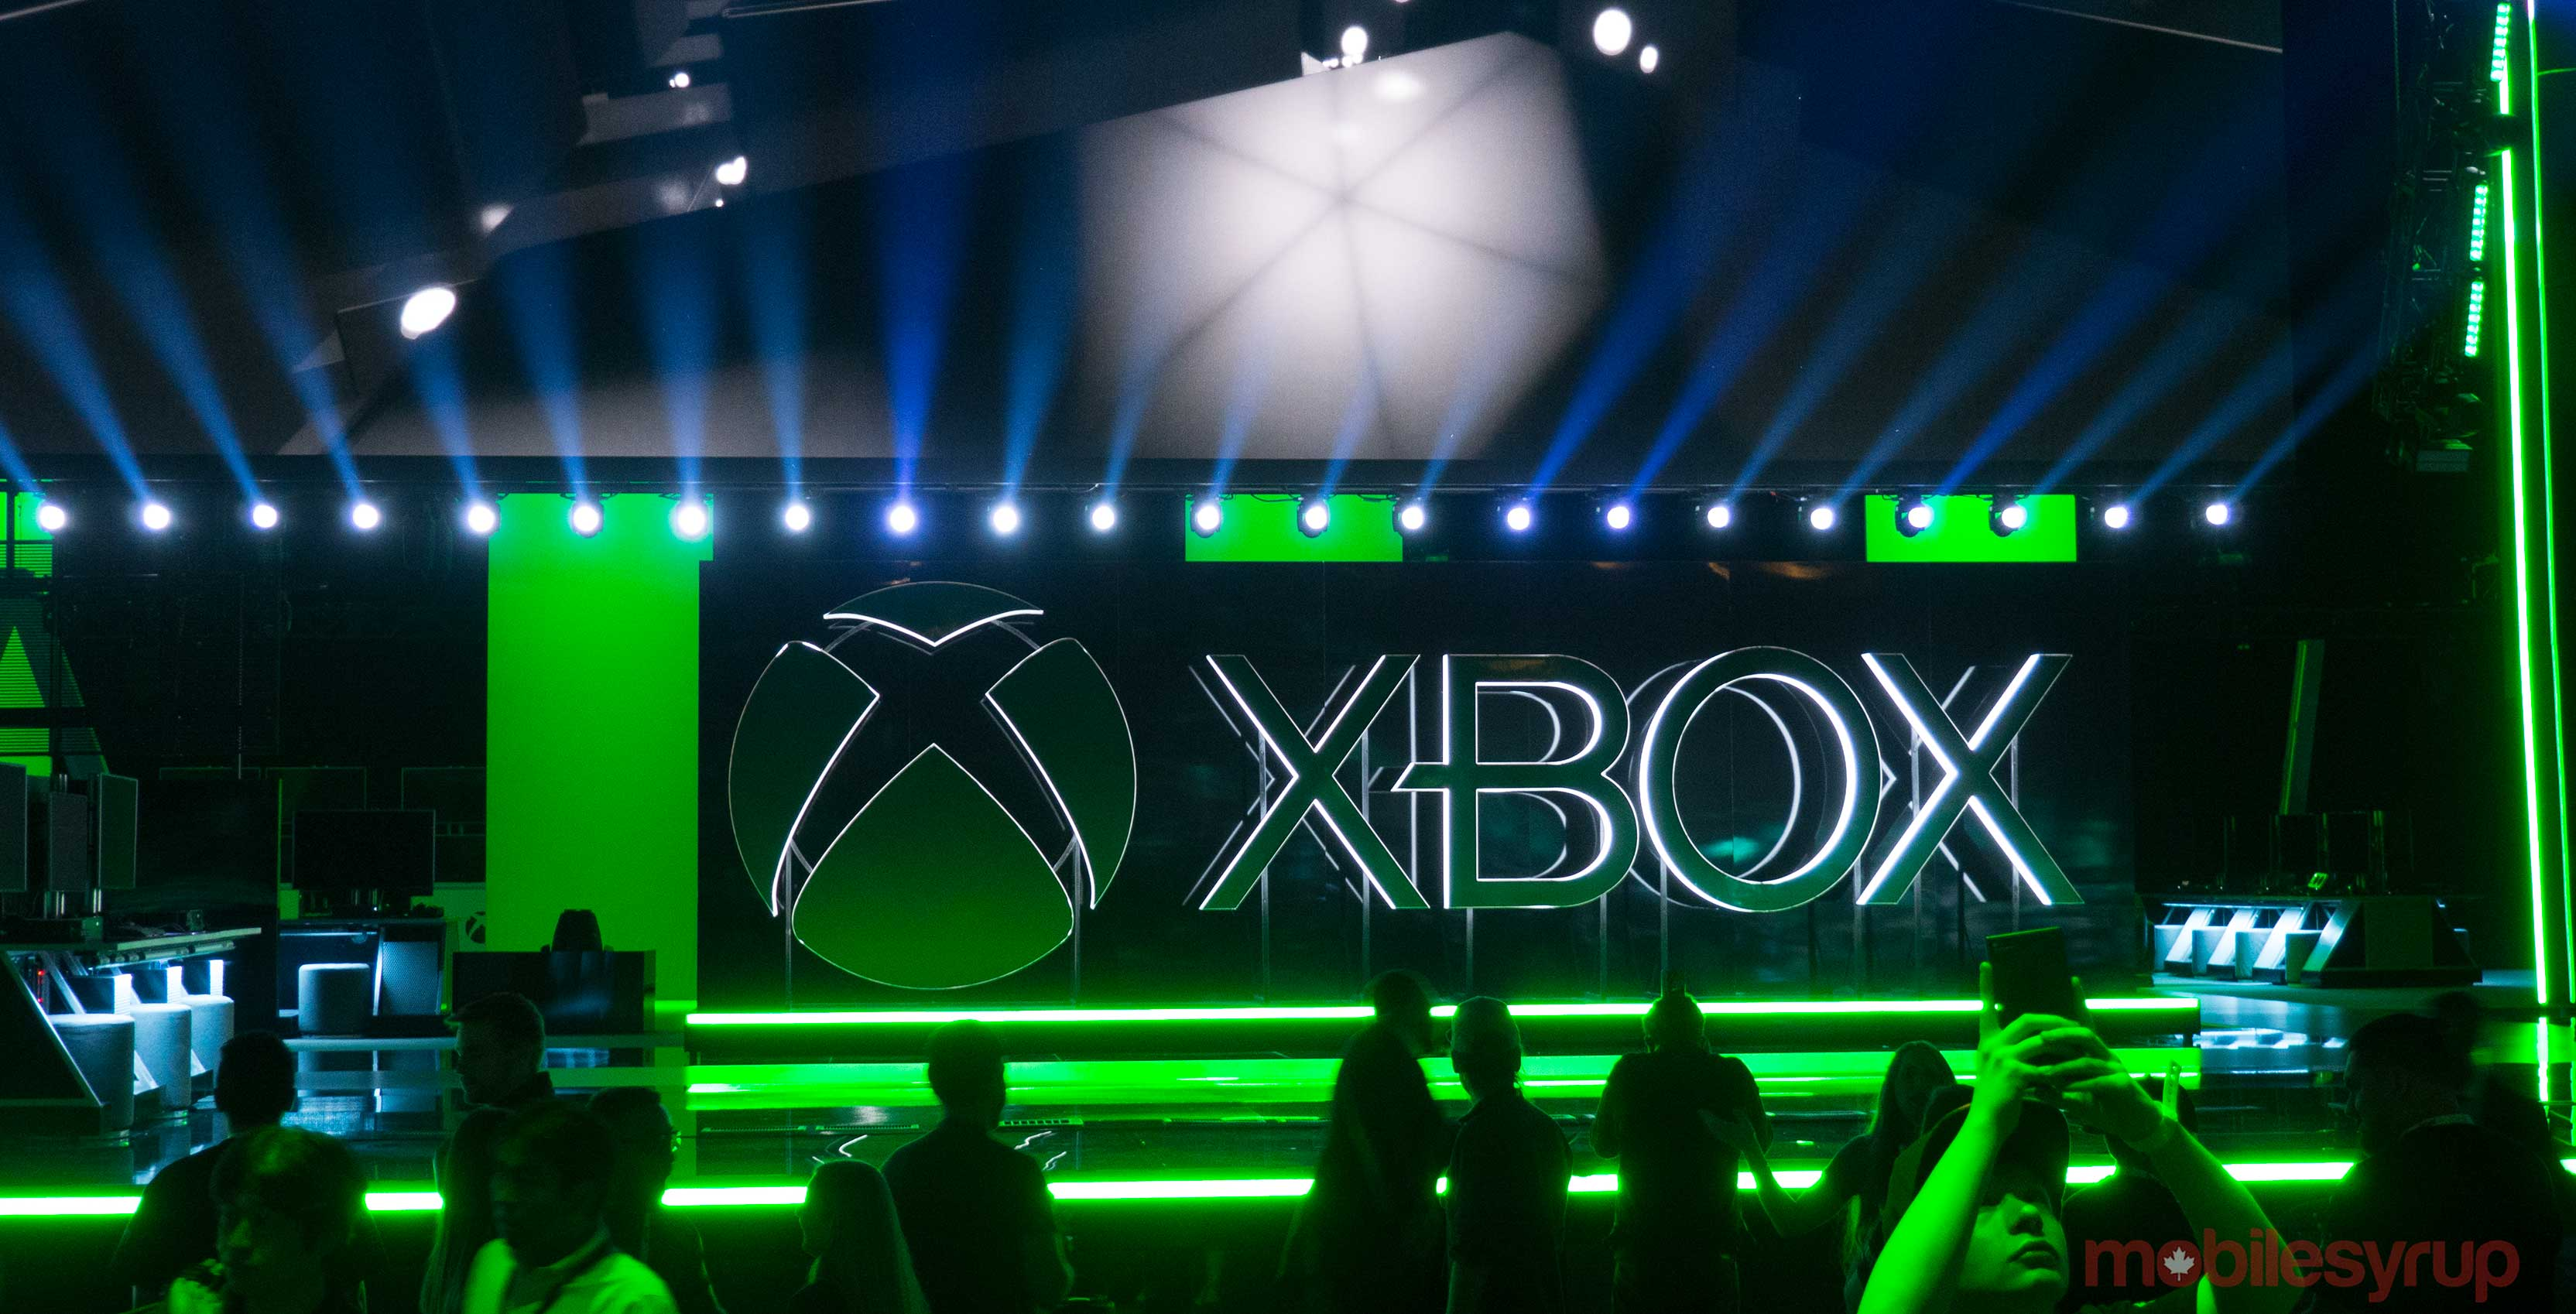 Next Xbox console 4 times more powerful than Xbox One X, features 120fps games